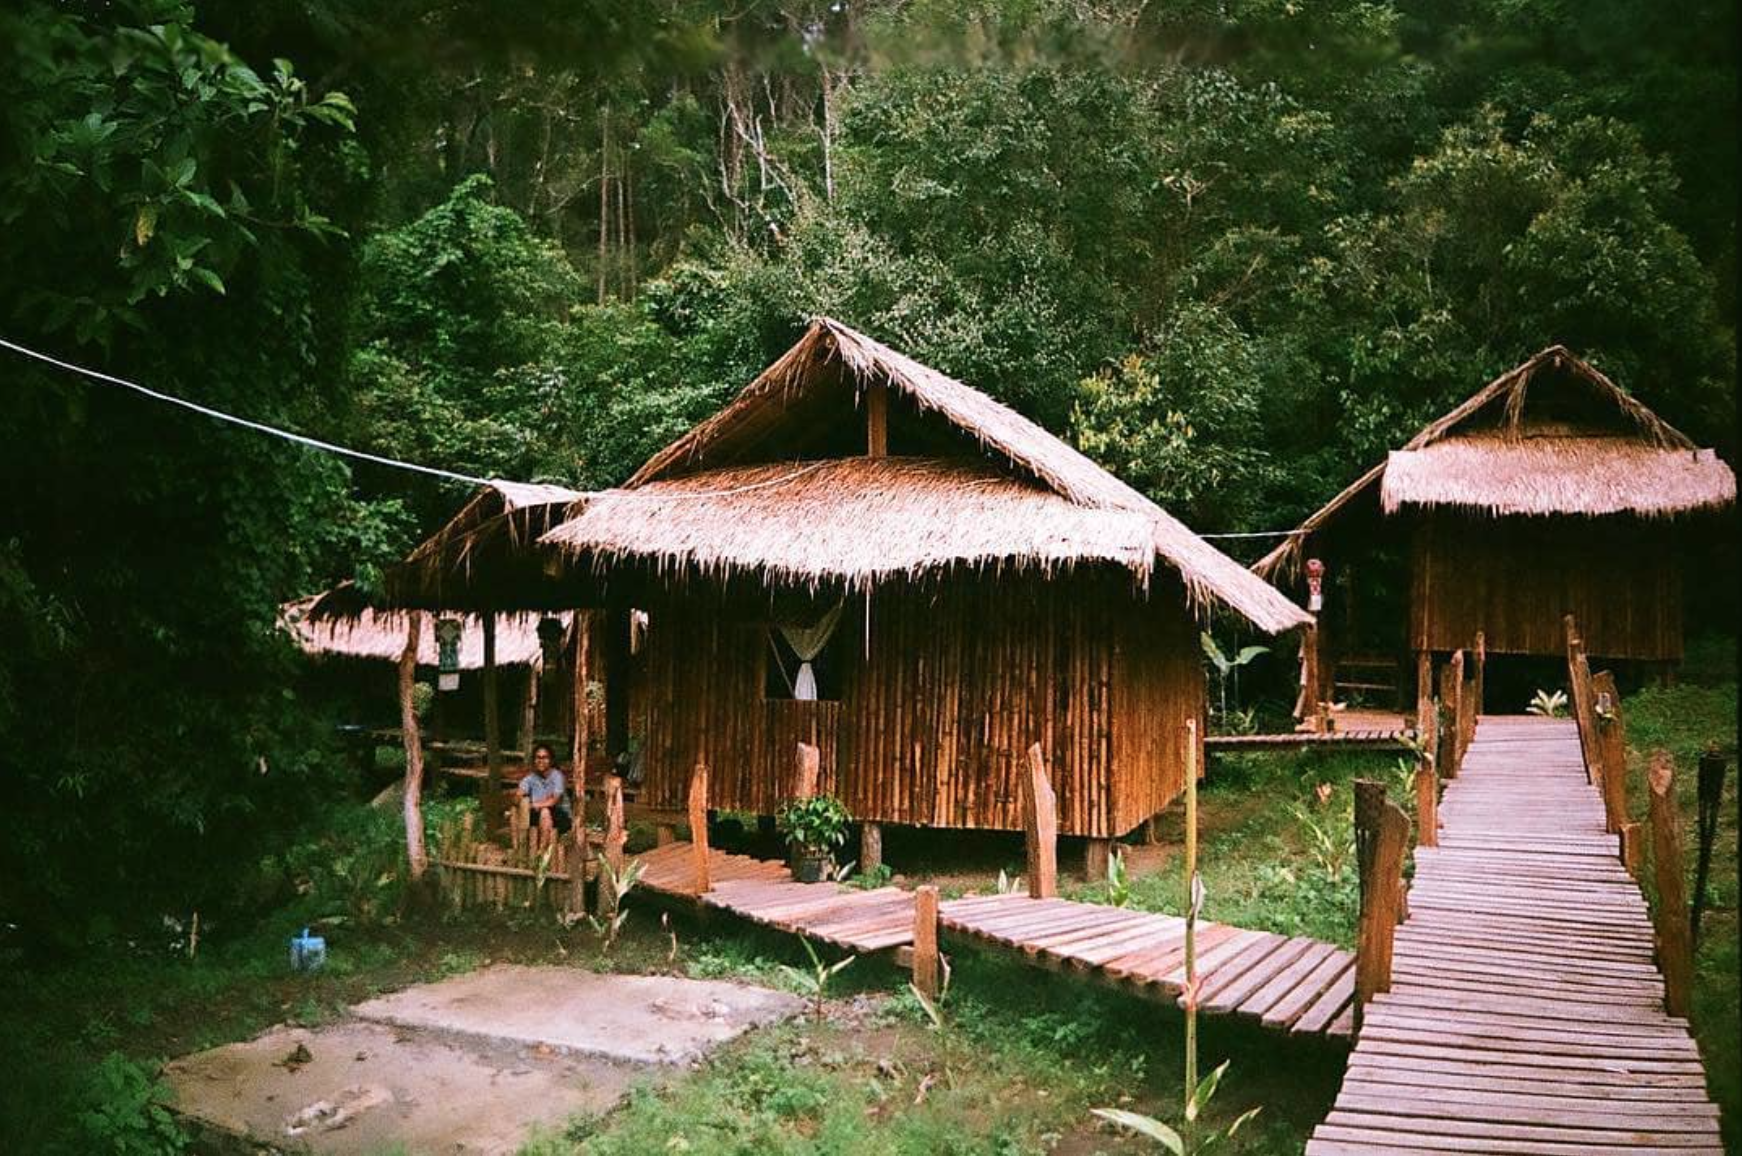 Chai Lai Sisters - bamboo cabins deep in the jungle